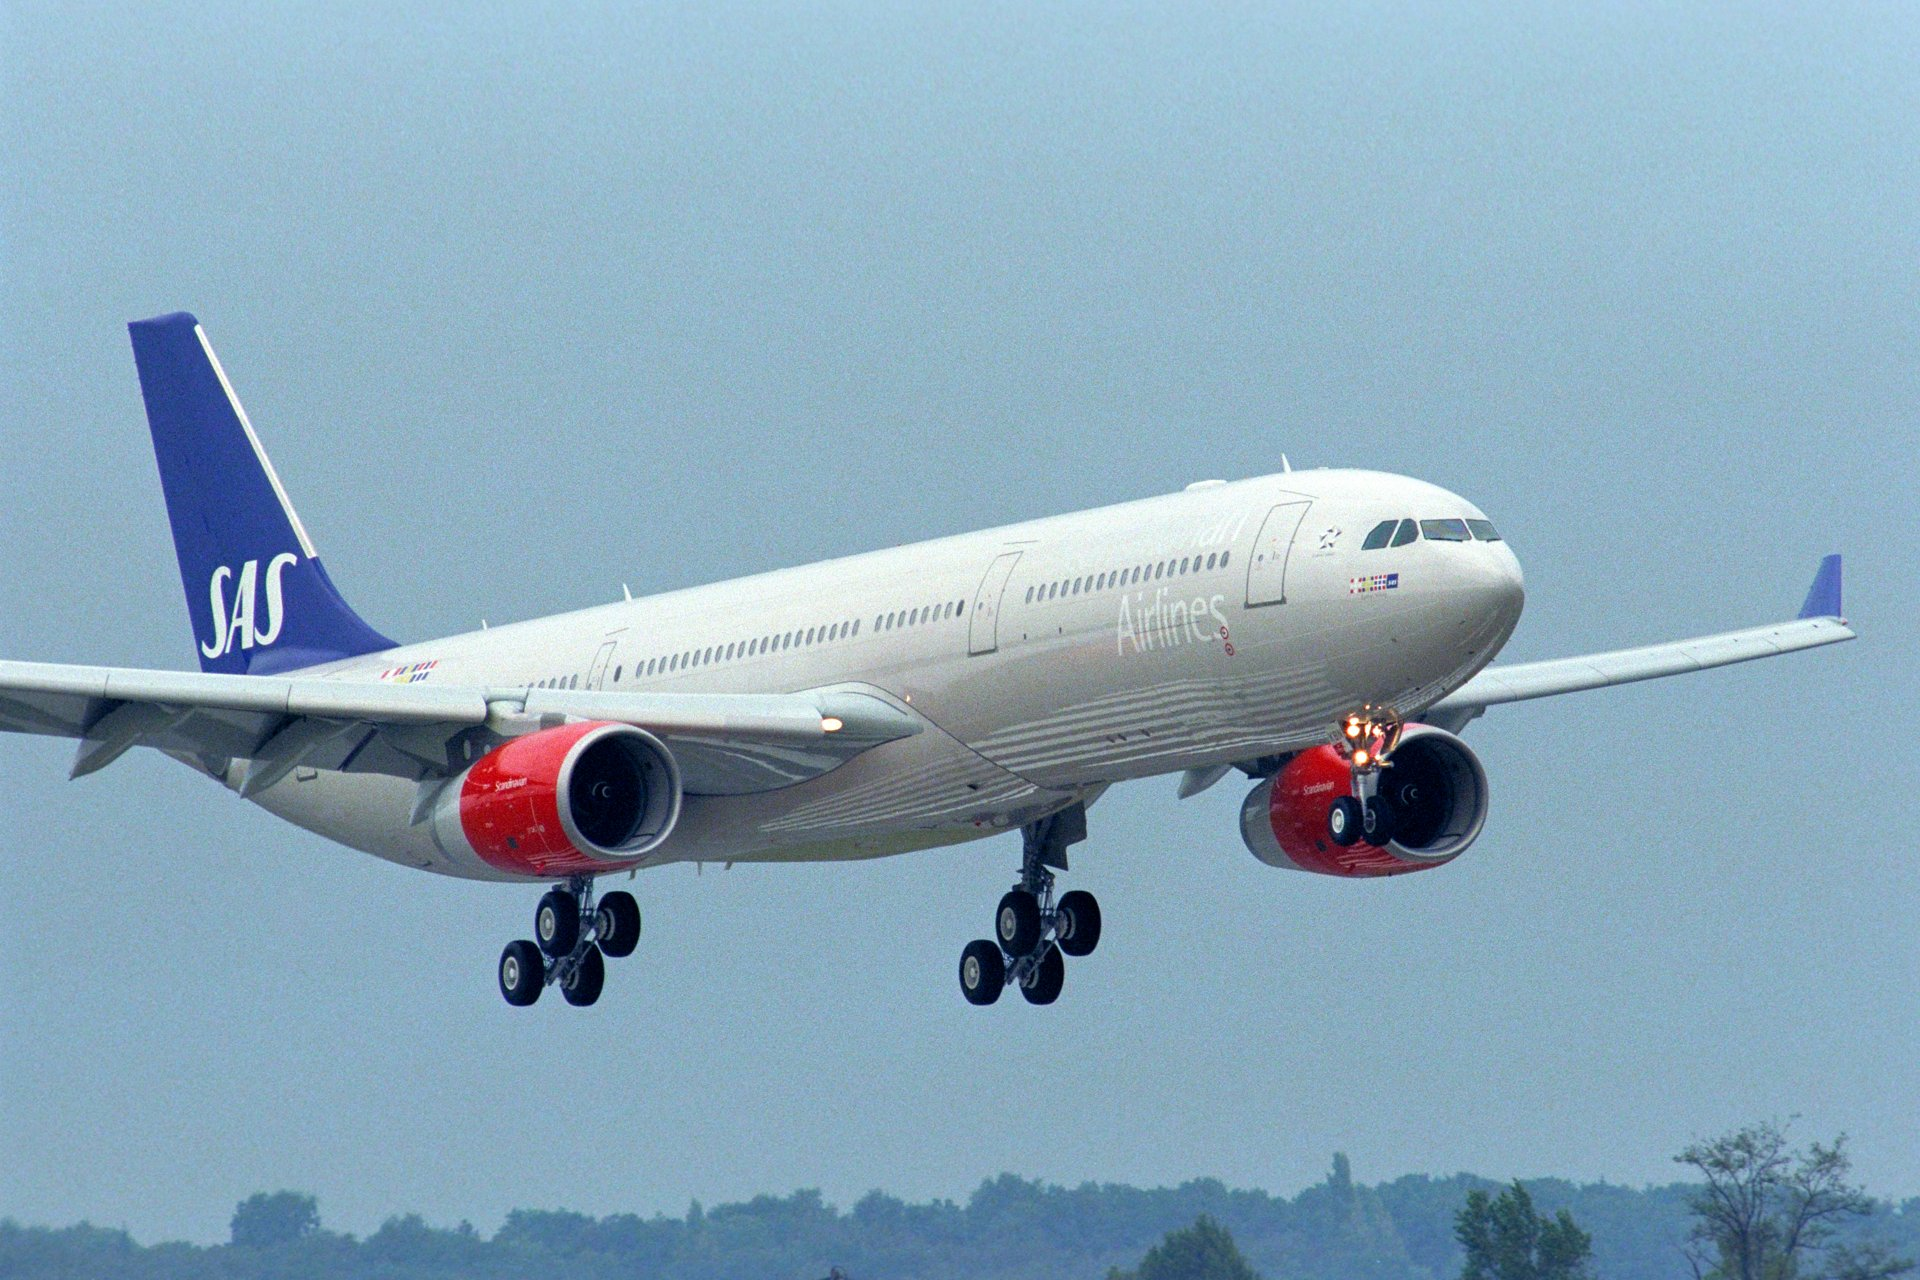 Scandinavian carrier SAS signed a memorandum of understanding covering four A330 commercial jetliners, along with eight A350 XWBs